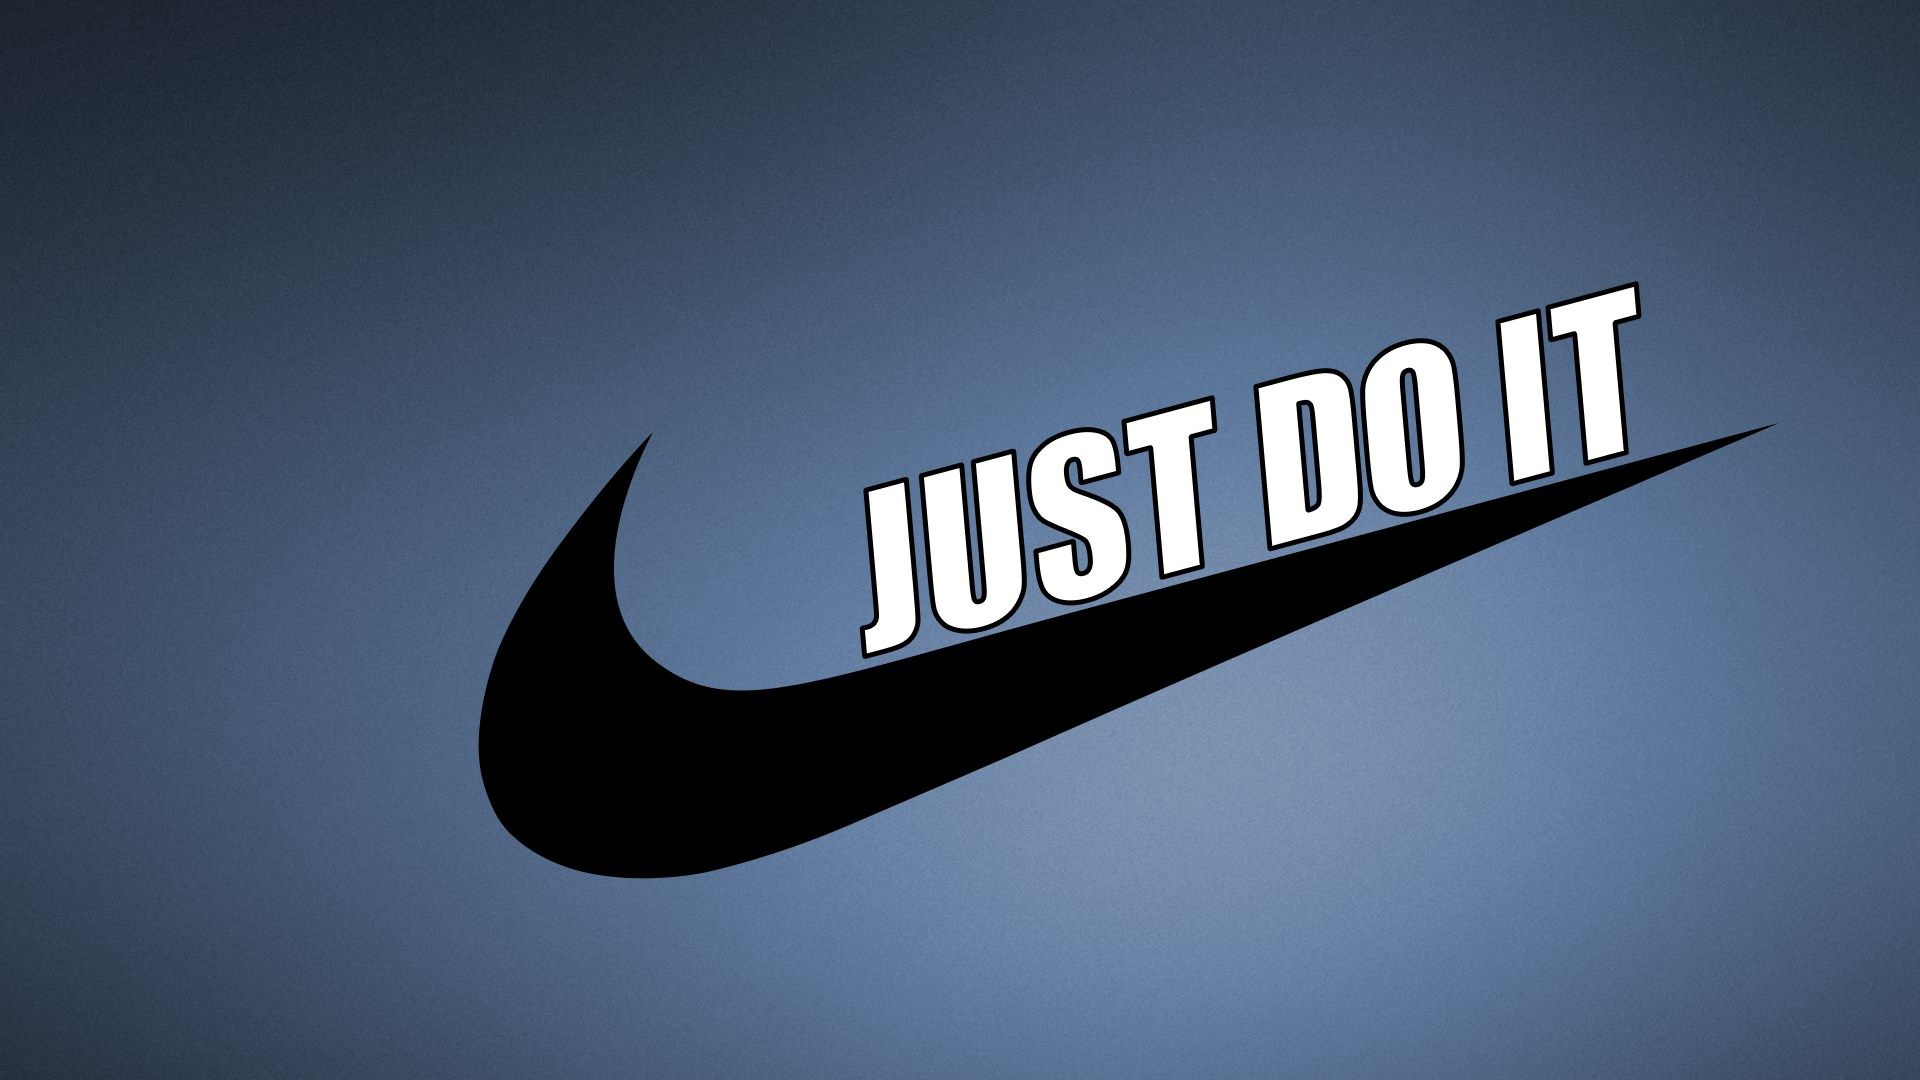 Just Do It Photos Download Just Do It Wallpapers Just Do It Nike Wallpaper